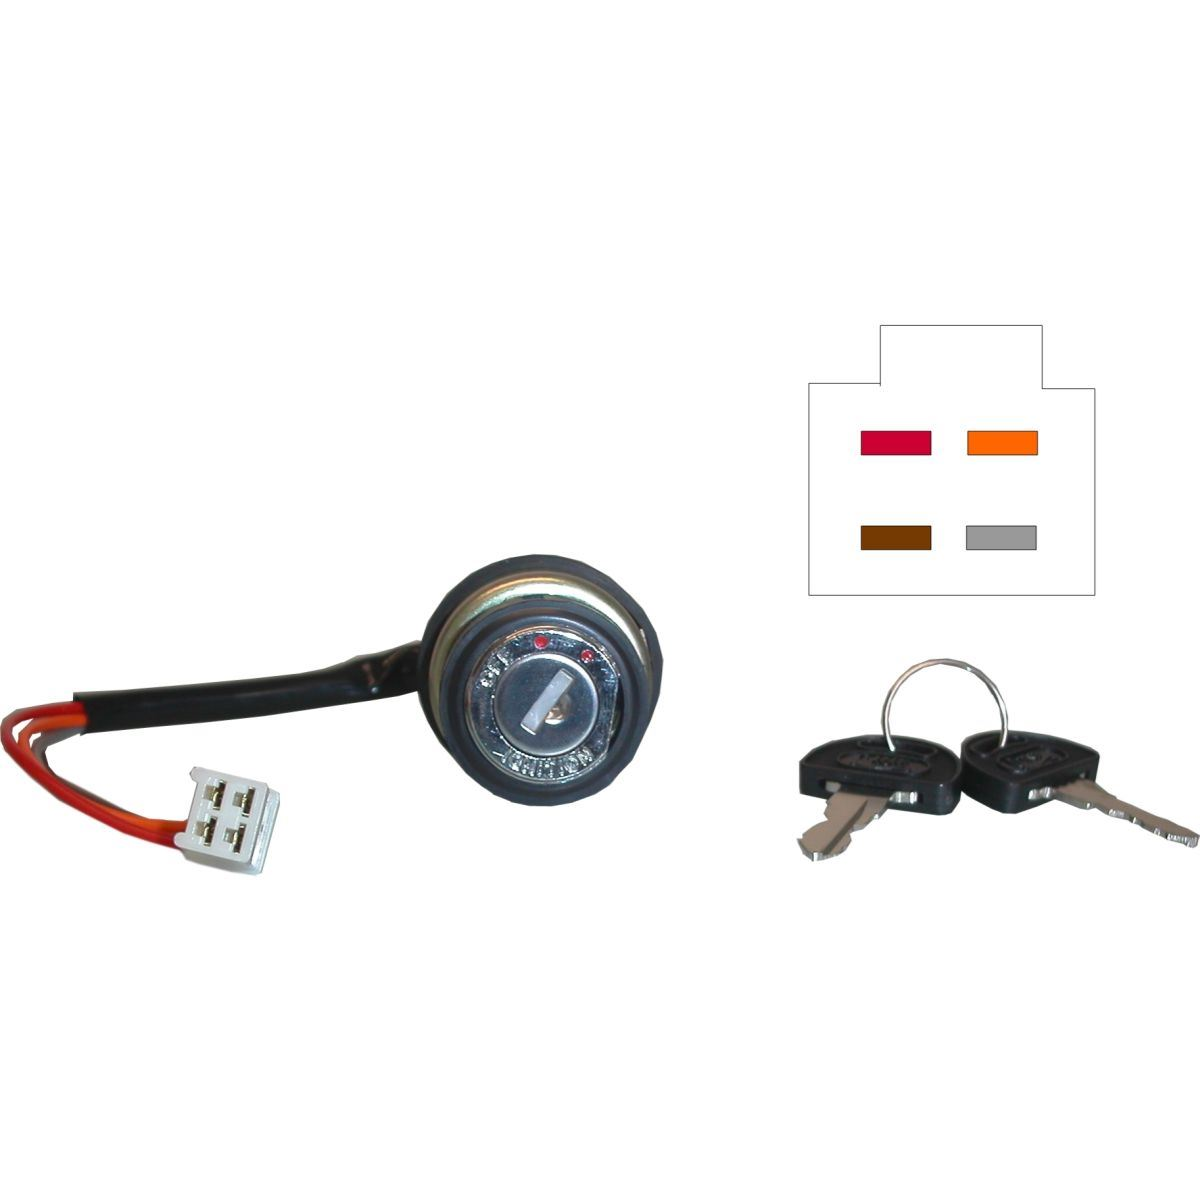 Ignition Switch for 1973 Suzuki GT 380 K